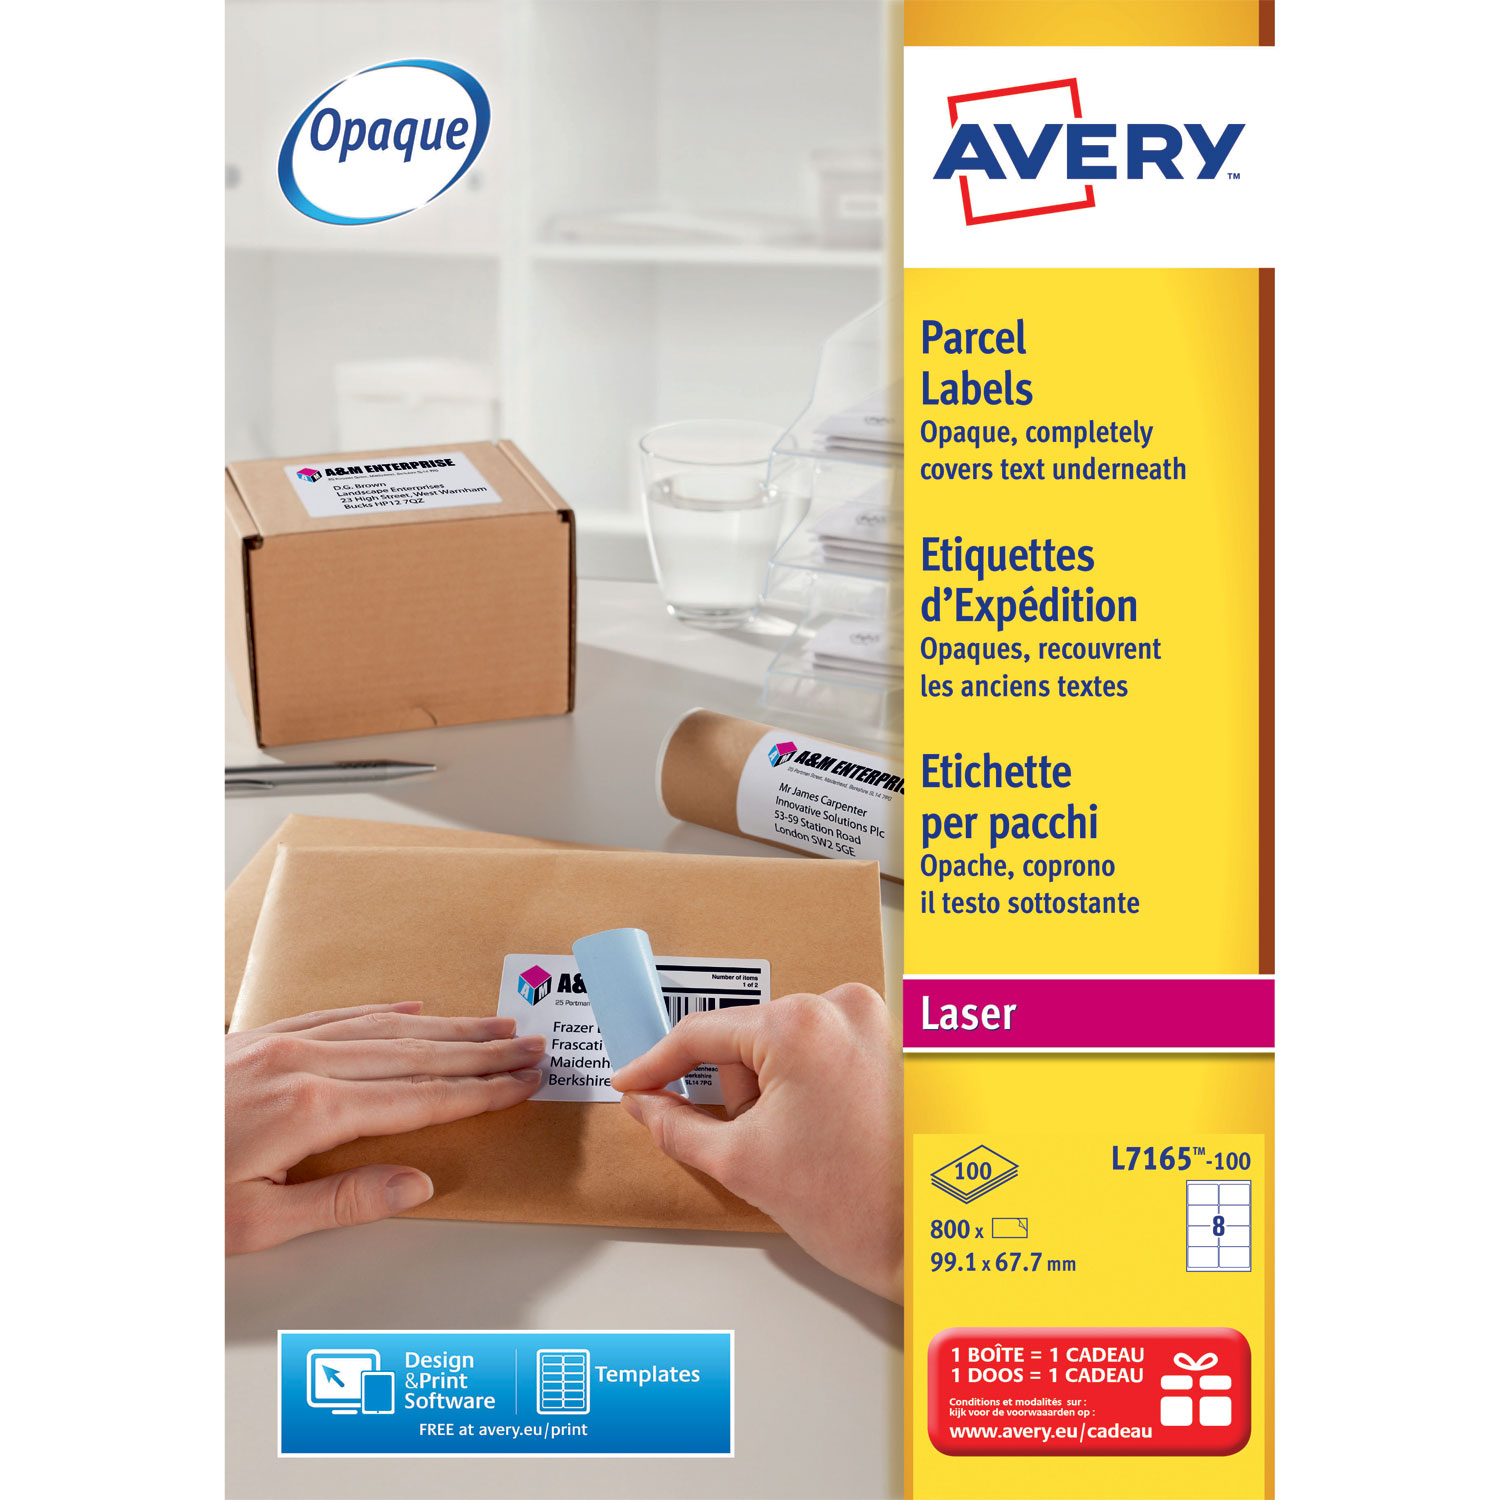 Avery etiquettes adresses faciles d coller 99 1 x 67 7 for 99 1 x 67 7 mm label template